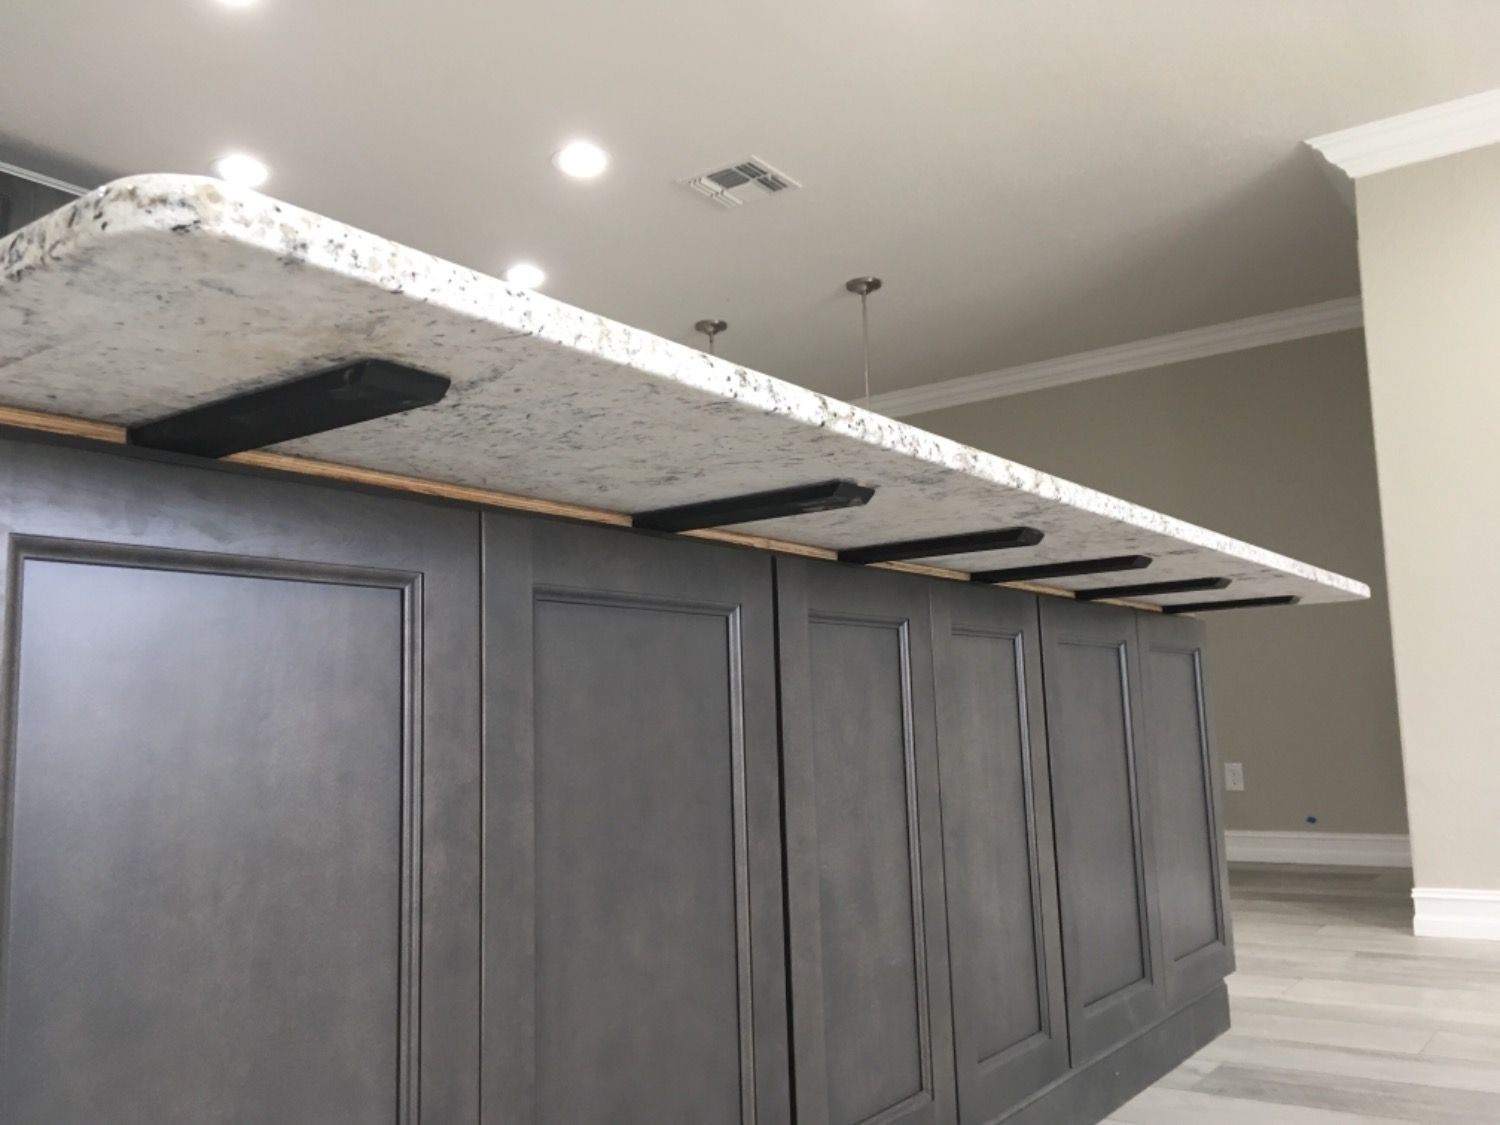 Hidden Island Support Bracket Countertop Support Brackets Island Countertops Floating Shelf Hardware